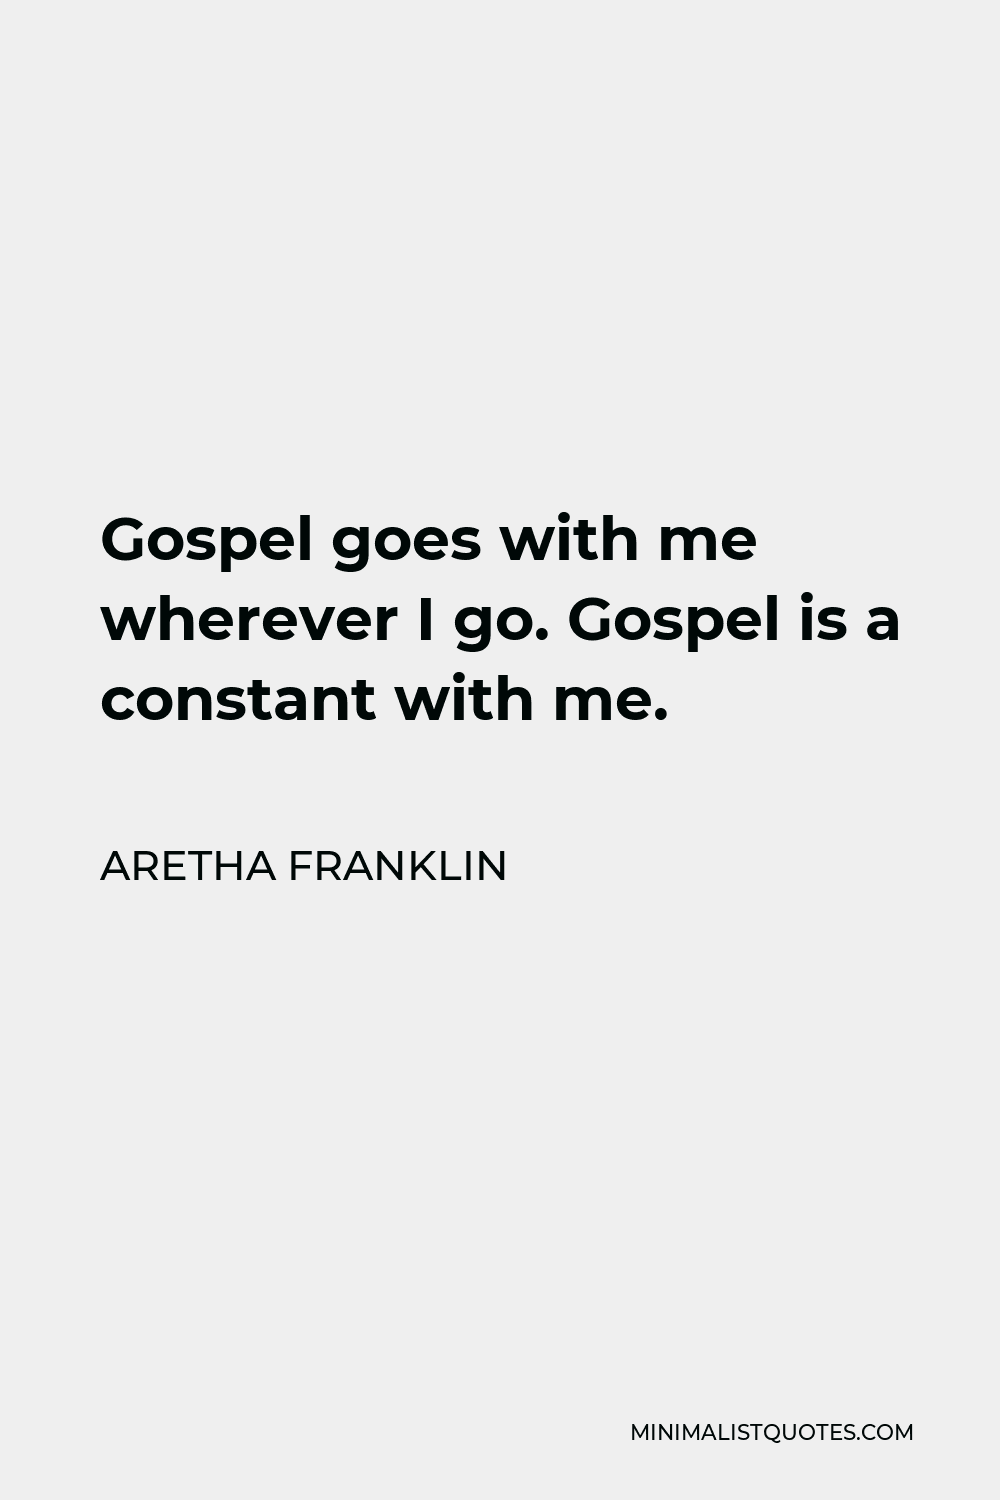 Aretha Franklin Quote - Gospel goes with me wherever I go. Gospel is a constant with me.